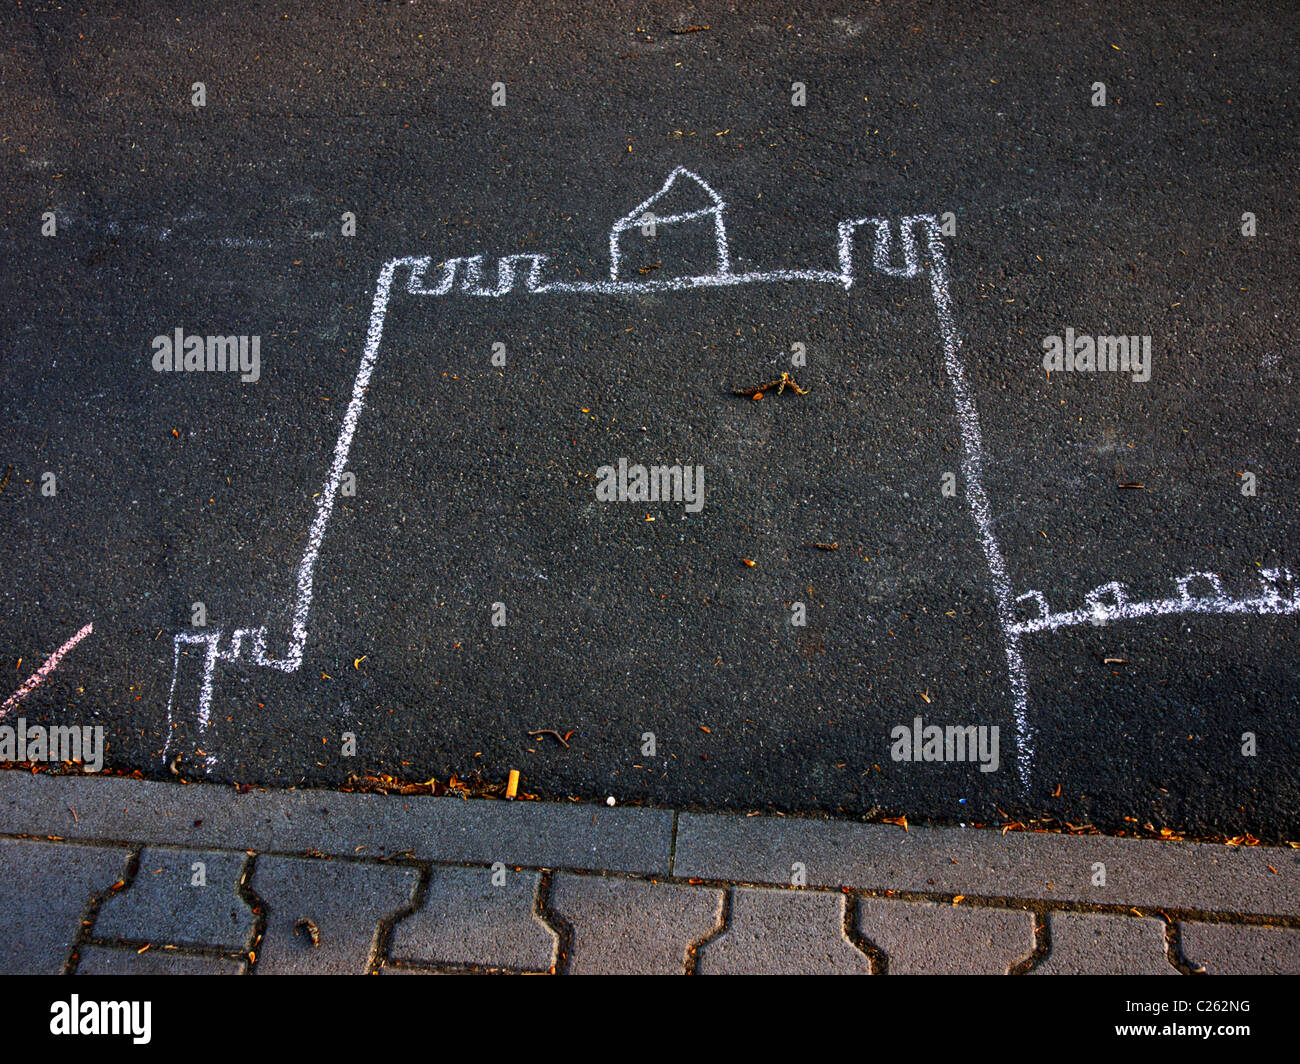 Chalk drawing depicting a castle on the street - Stock Image